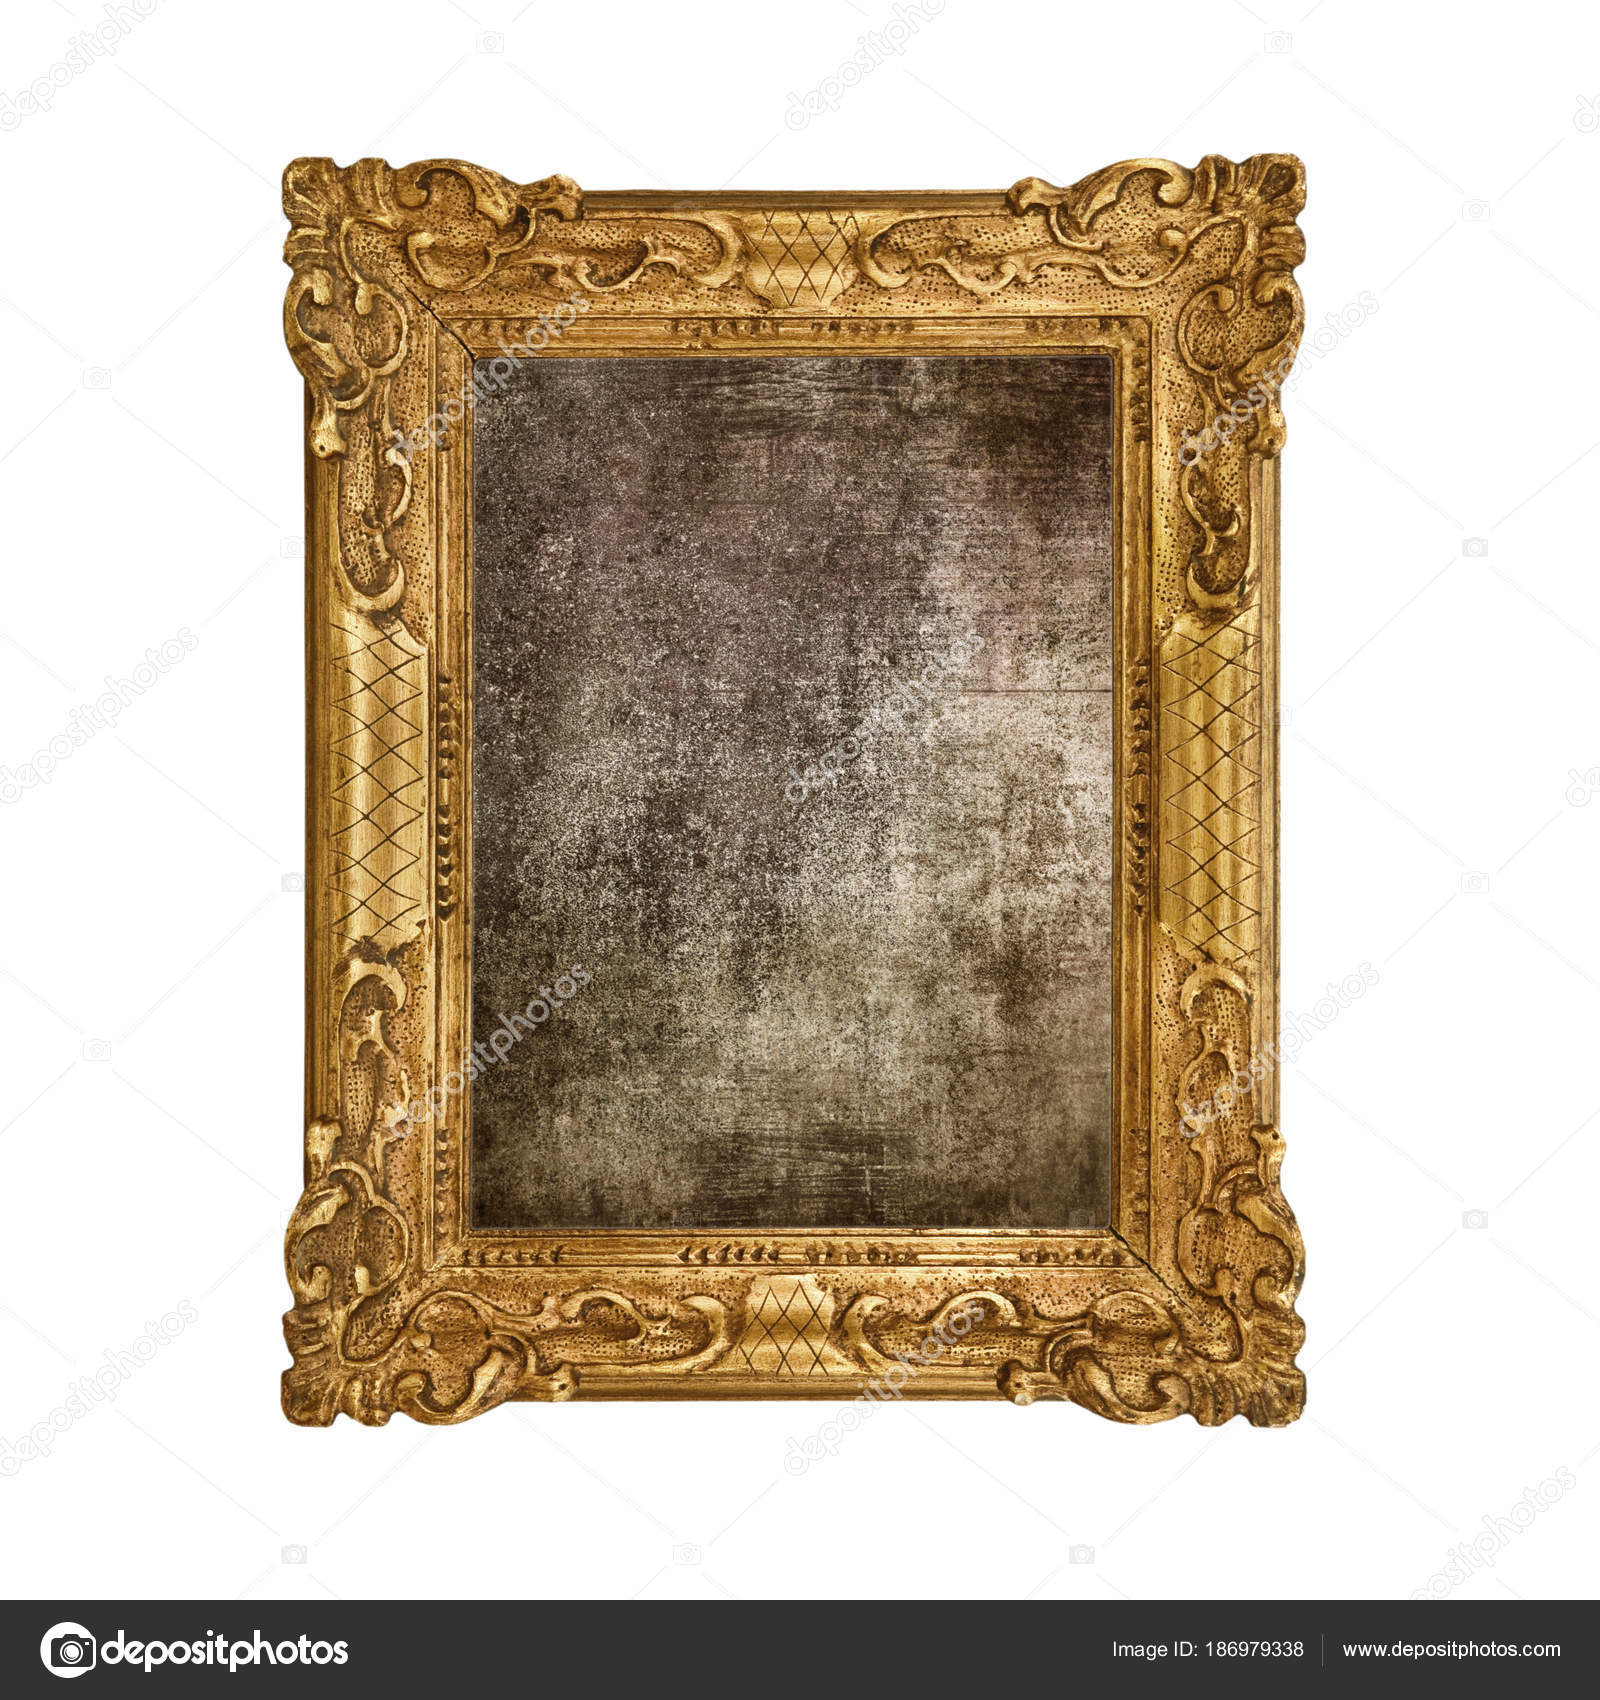 Groovy old frame in white background — Stock Photo © Photobeps #186979338 NW13